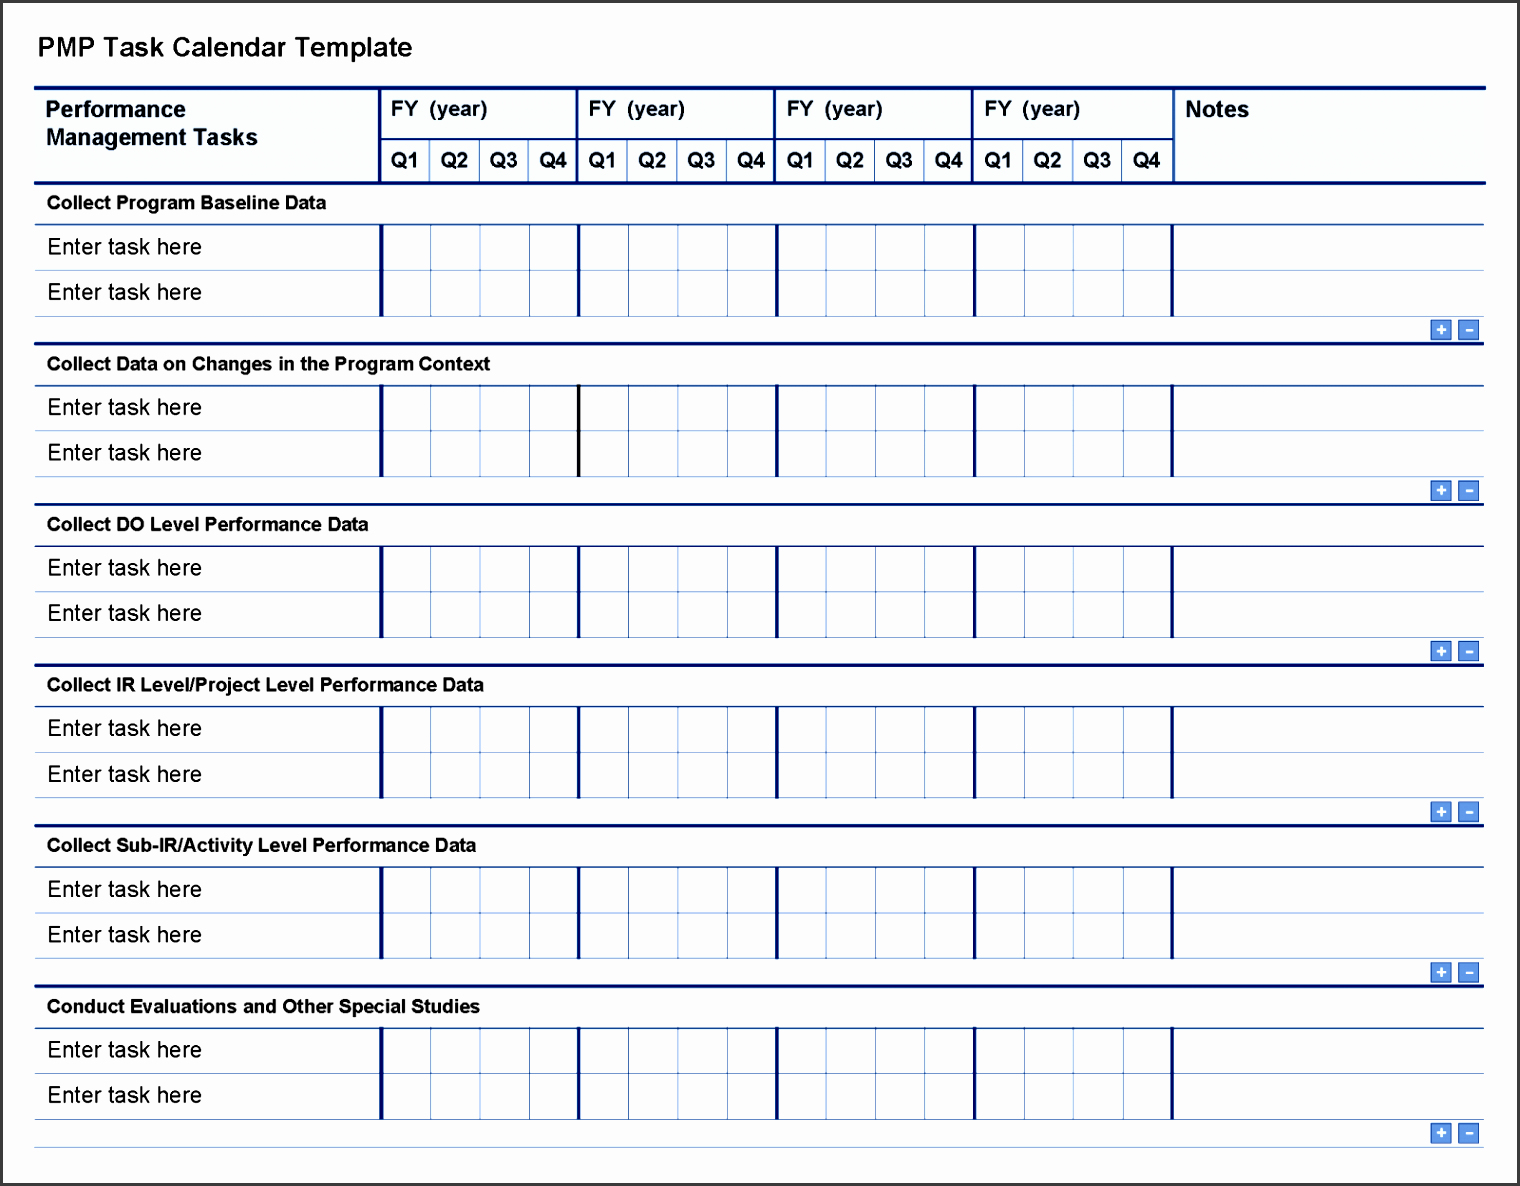 pmp task calendar template page 1 sample project checklist examples of management requirements implementation closure handover